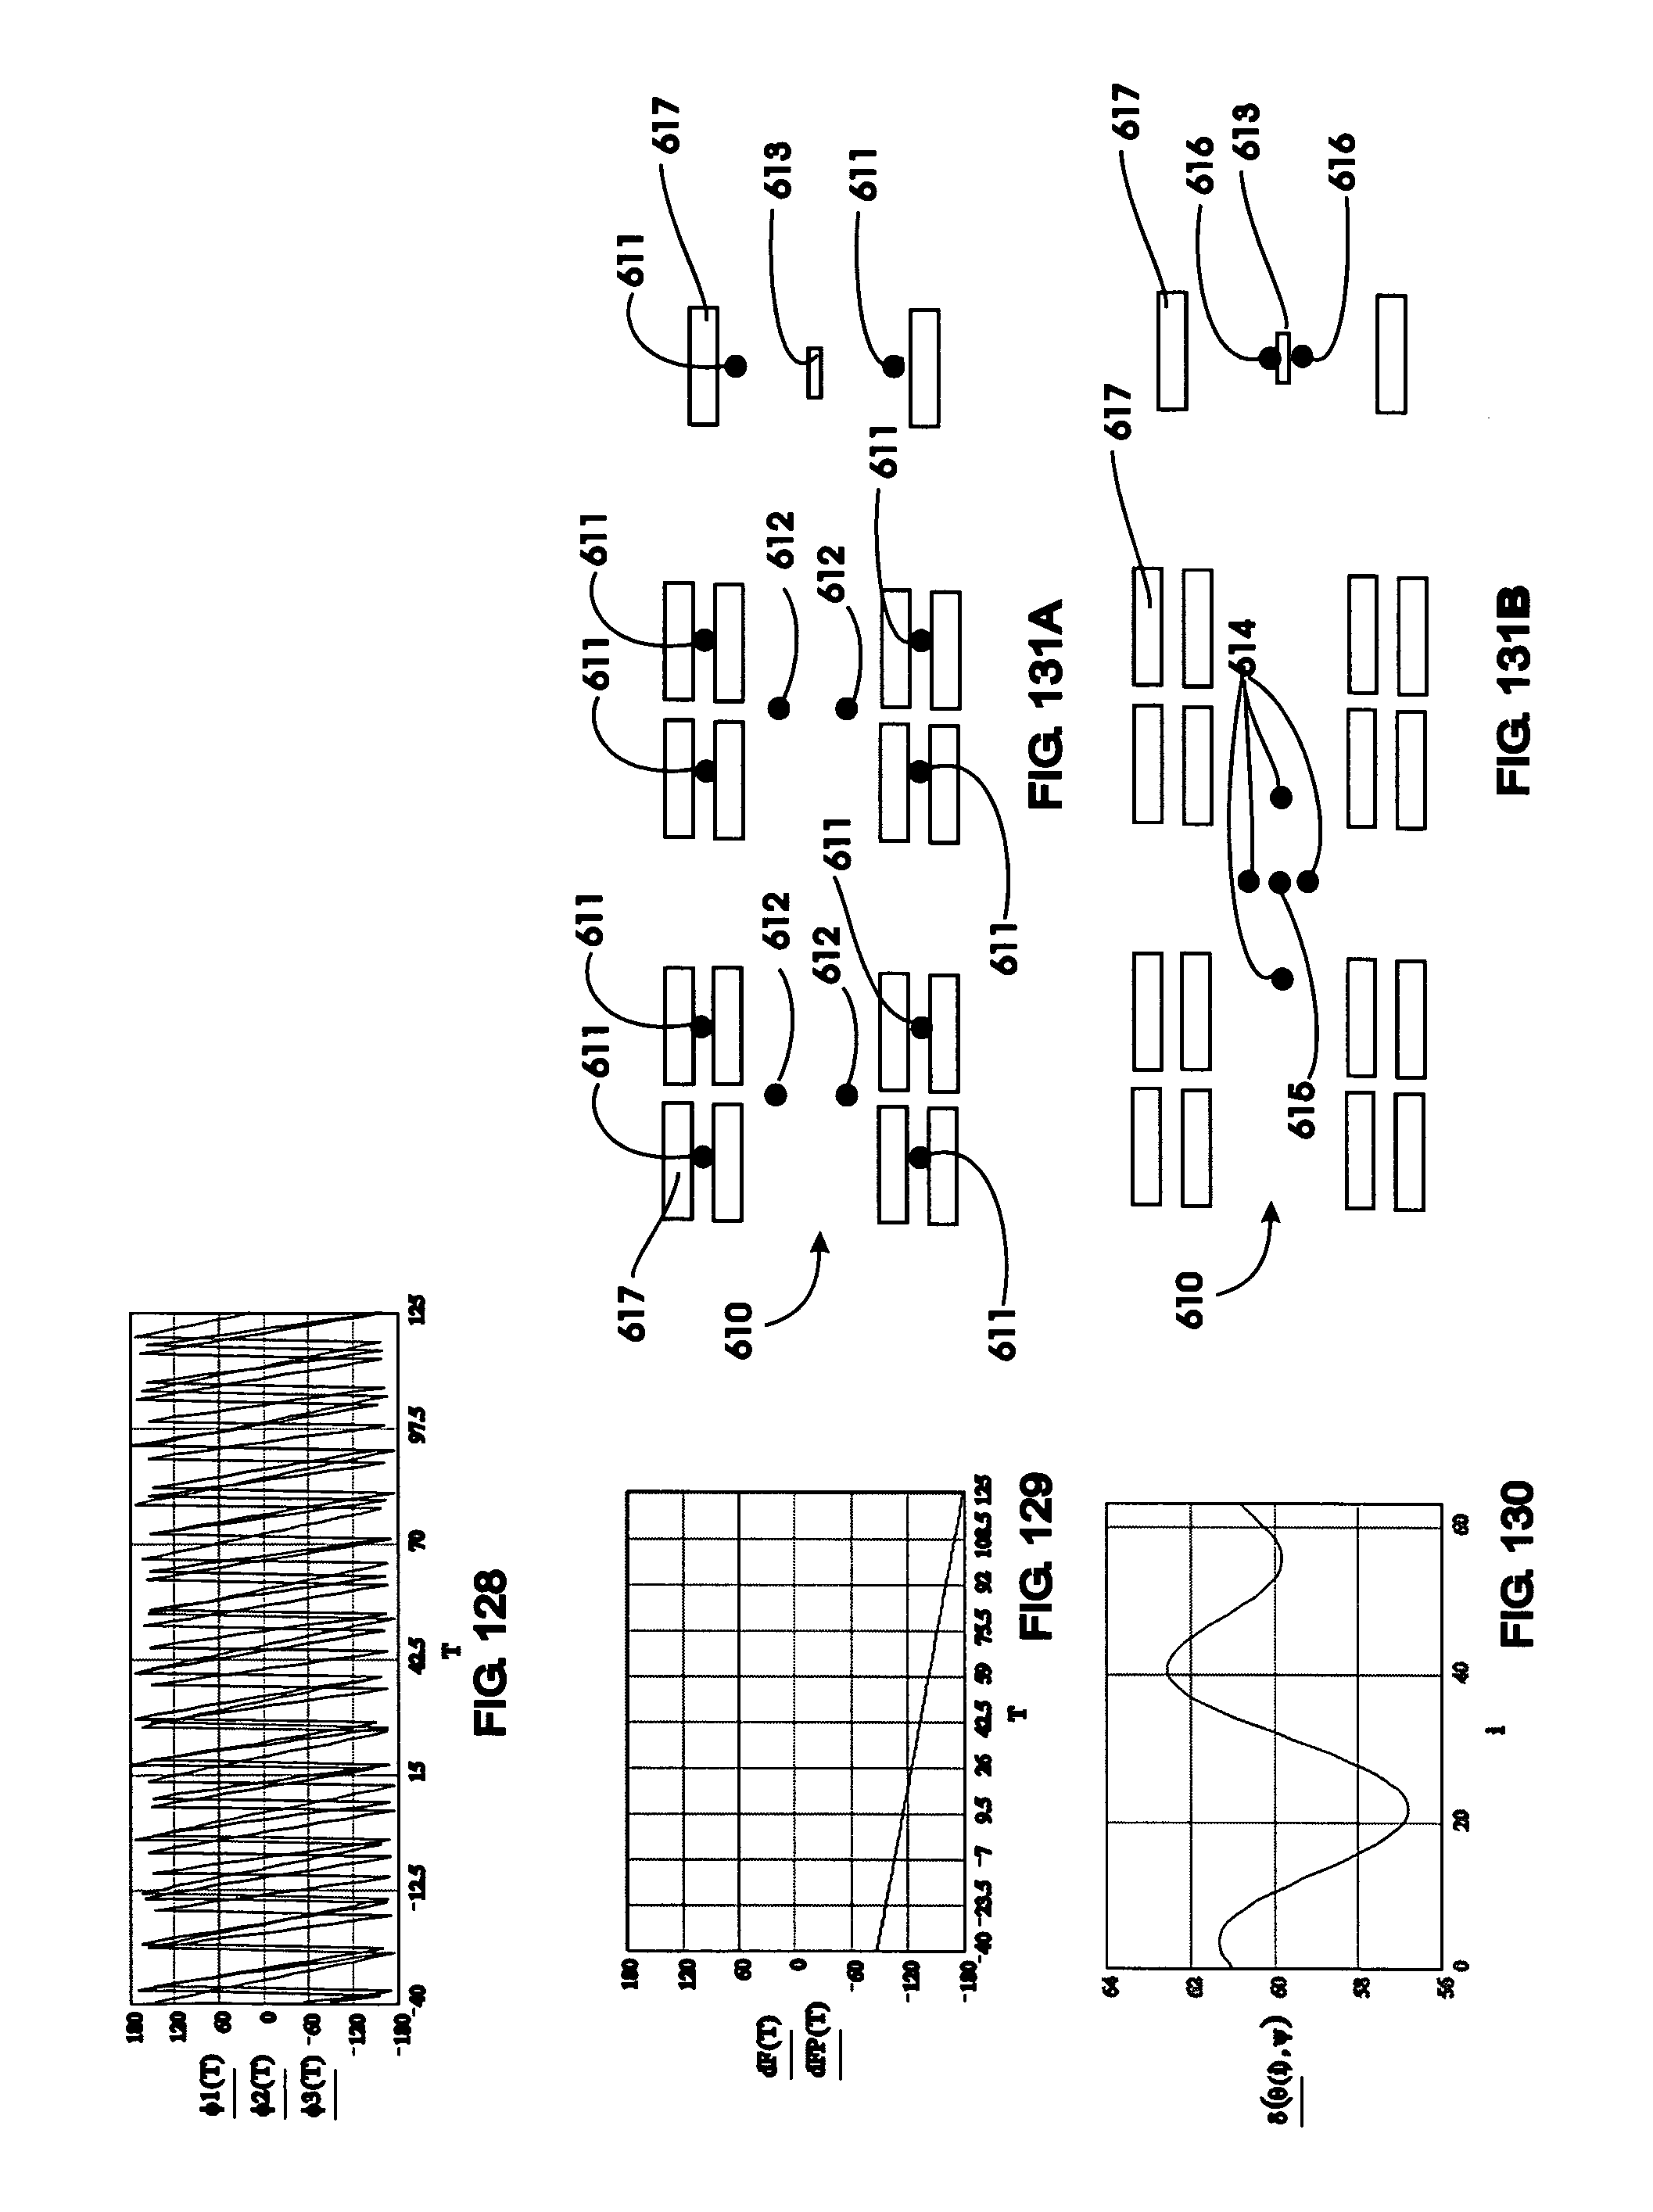 Patent Us 7421321 B2 Circuit 374 Bidirectional Solid State Relay Circuits Designed By 0 Petitions